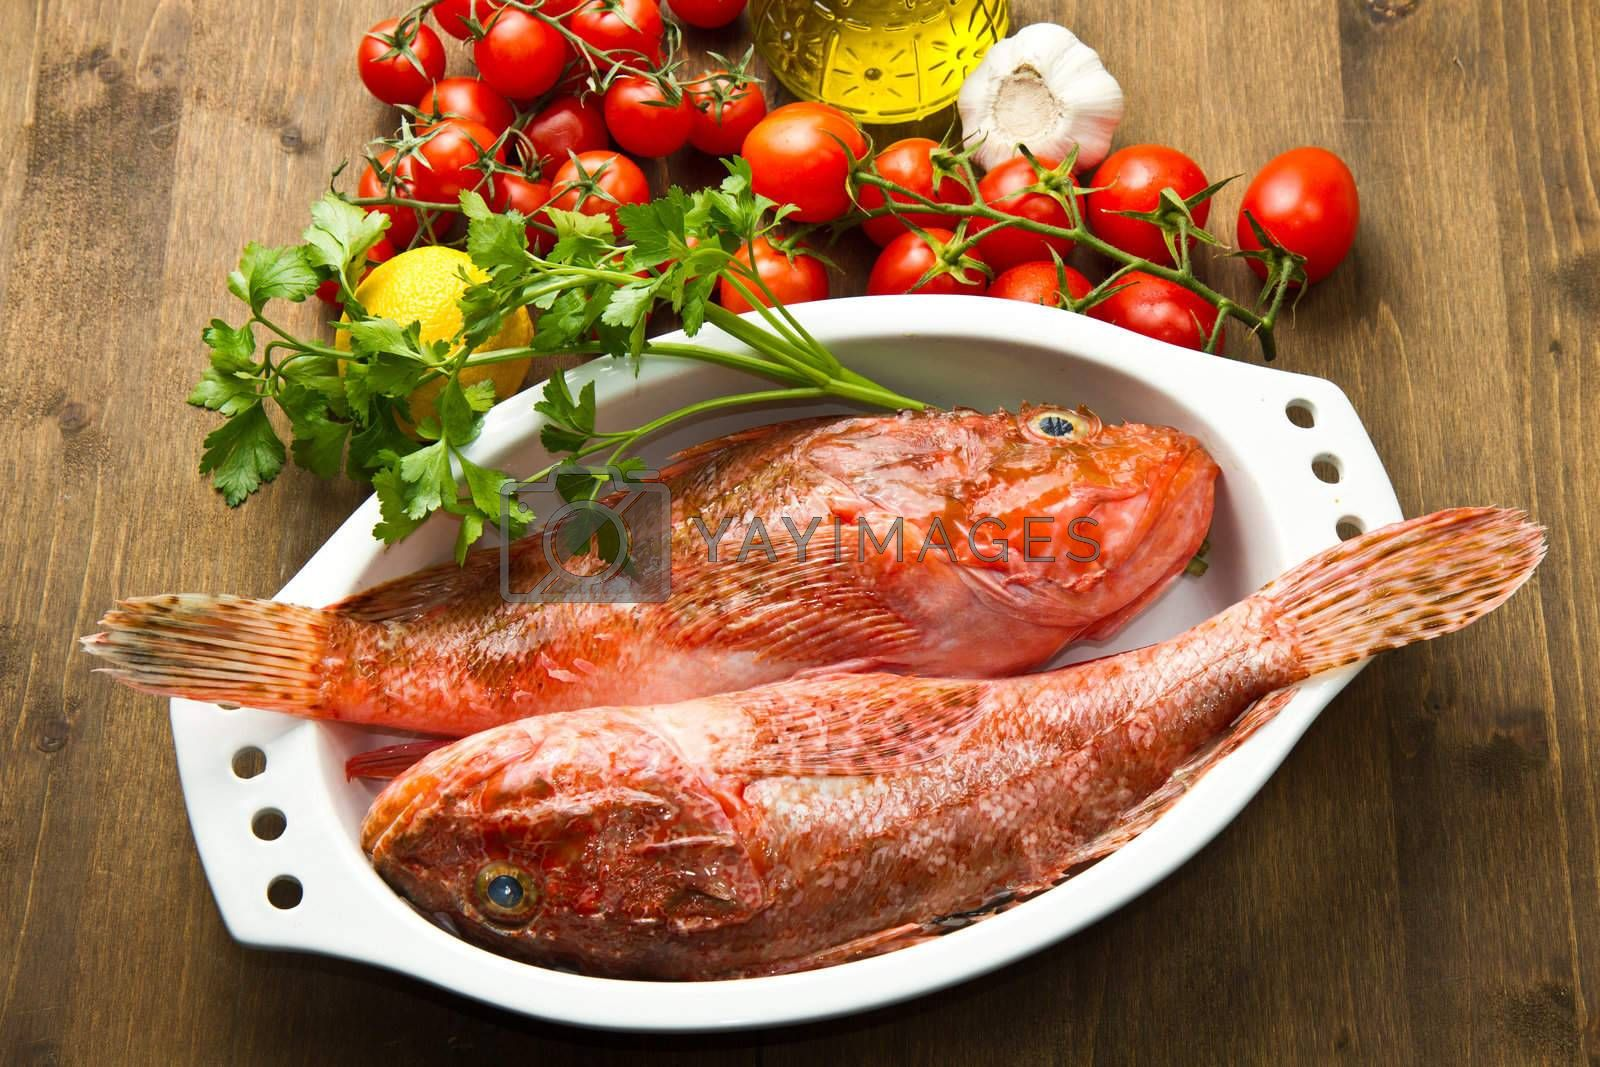 Redfish with tomatoes, parsley, garlic and olve oil